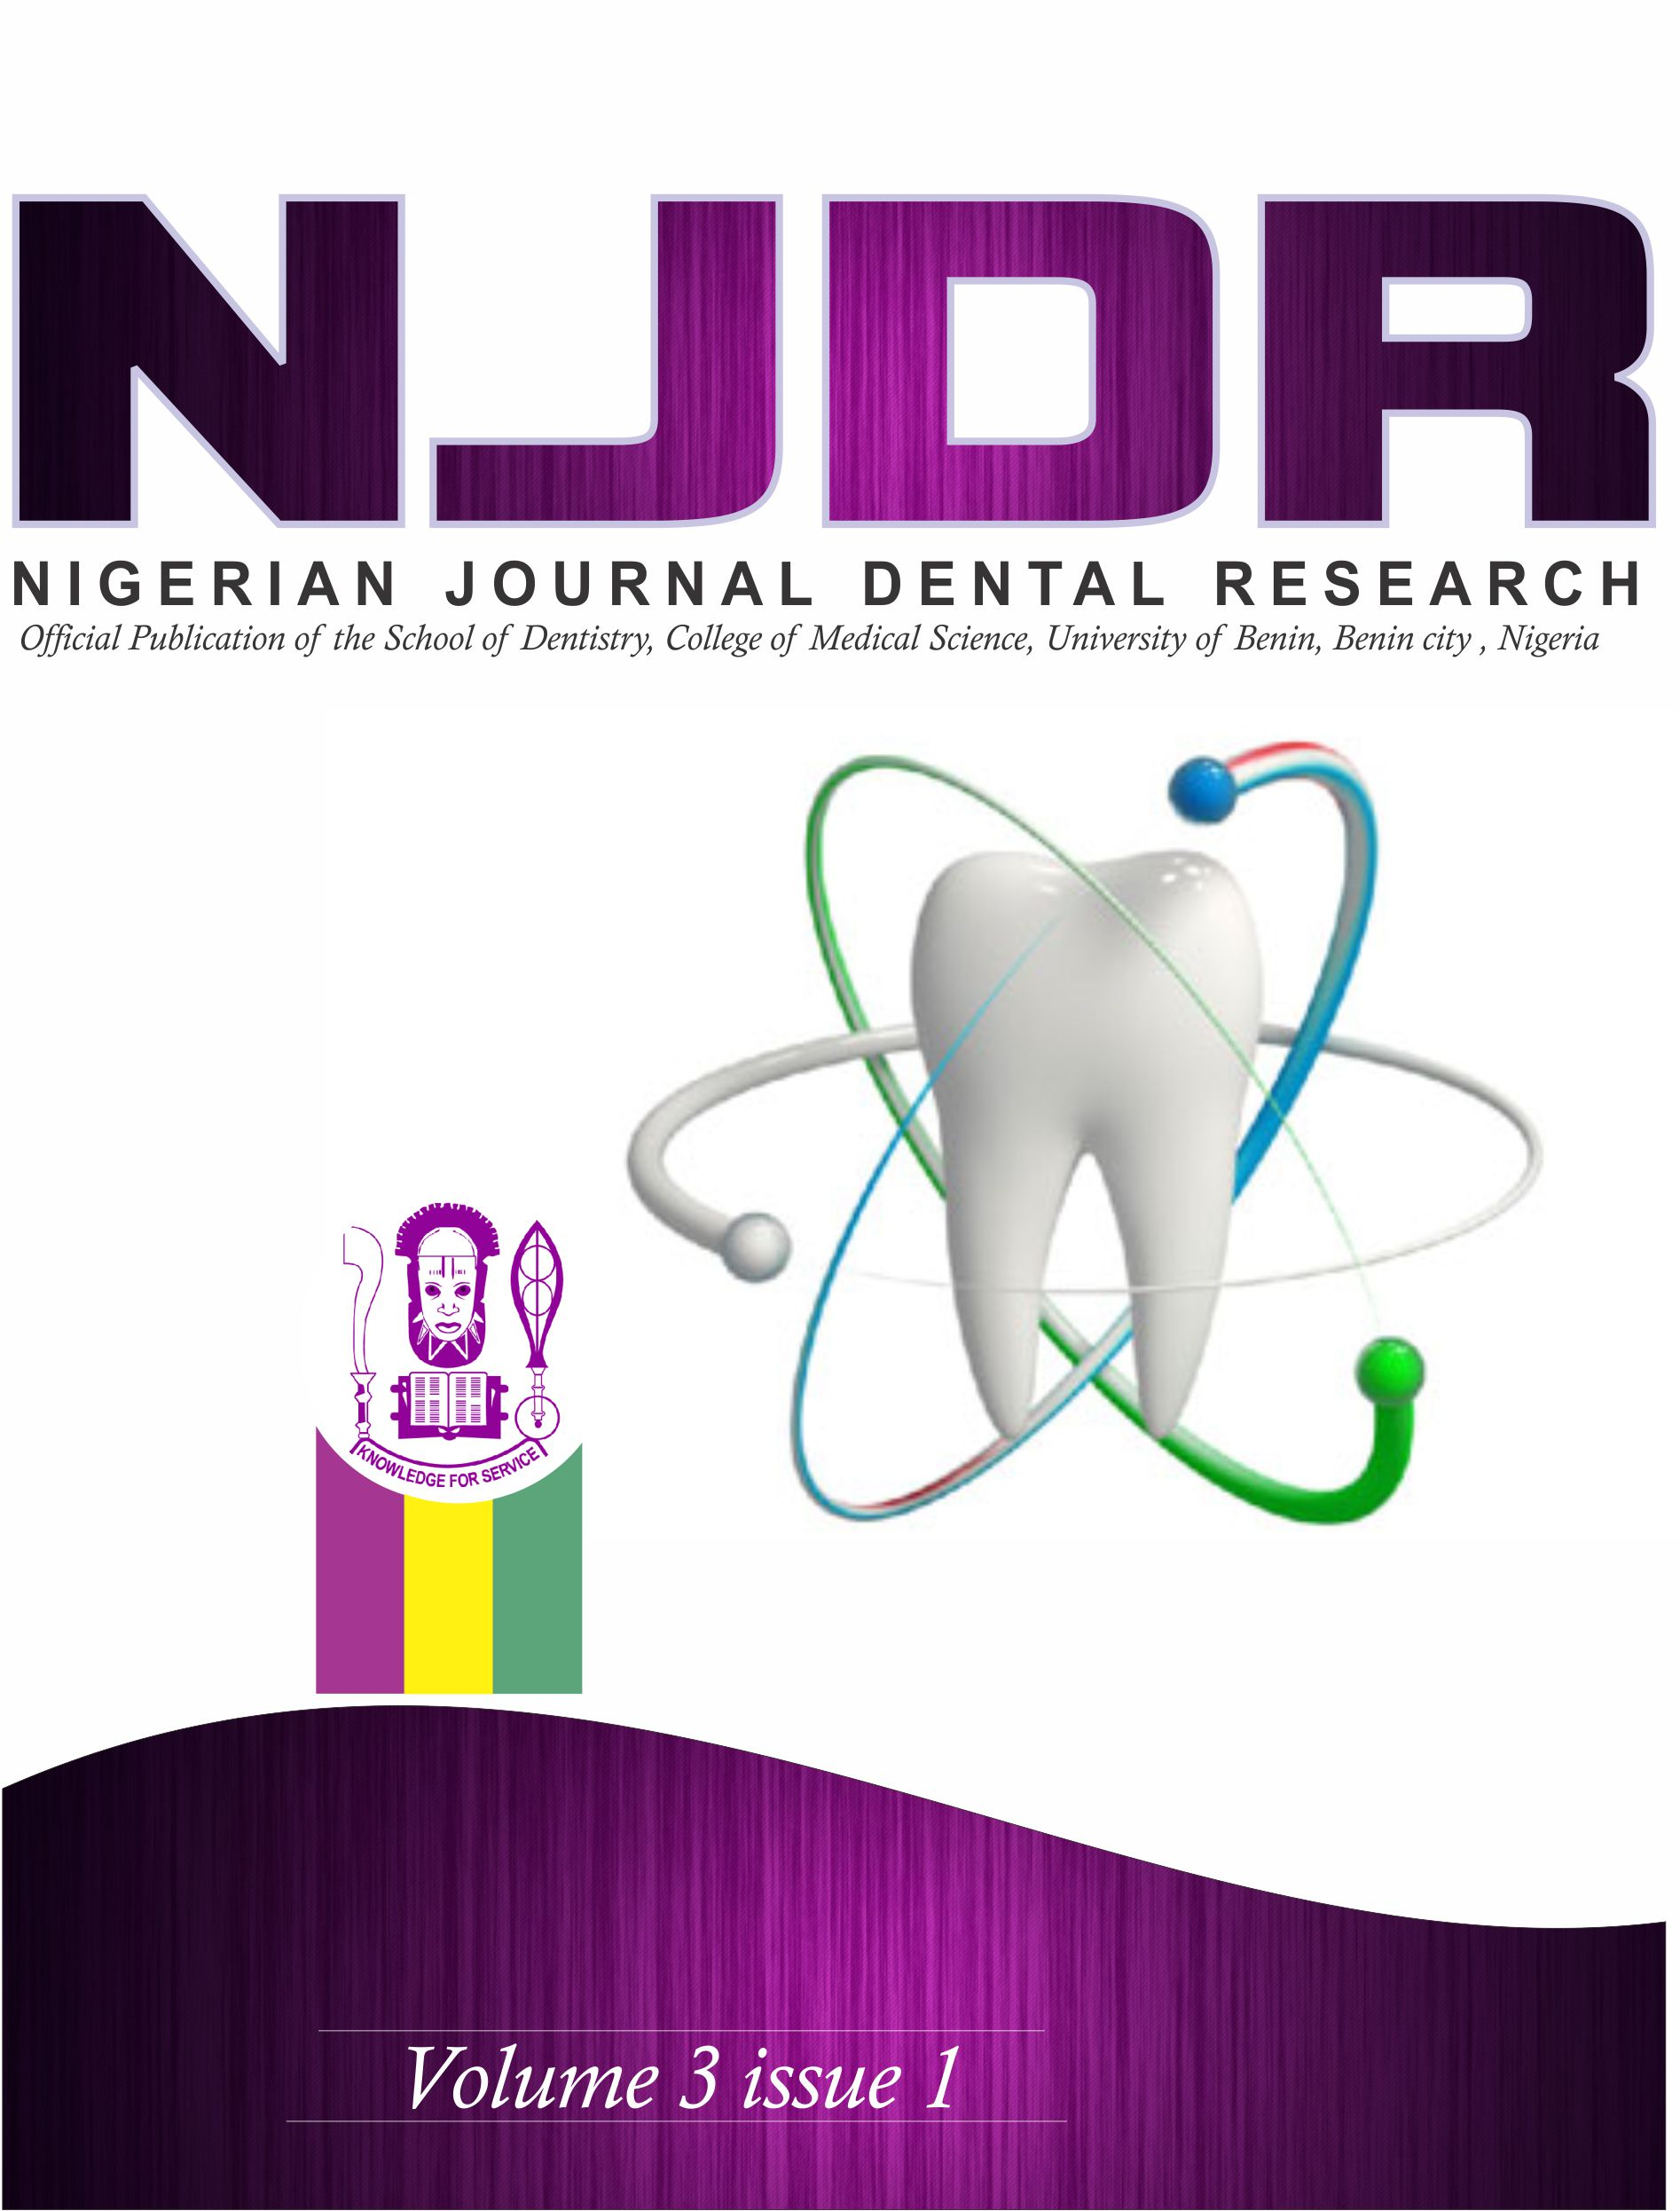 NIGERIAN JOURNA DENTAL RESEARCH